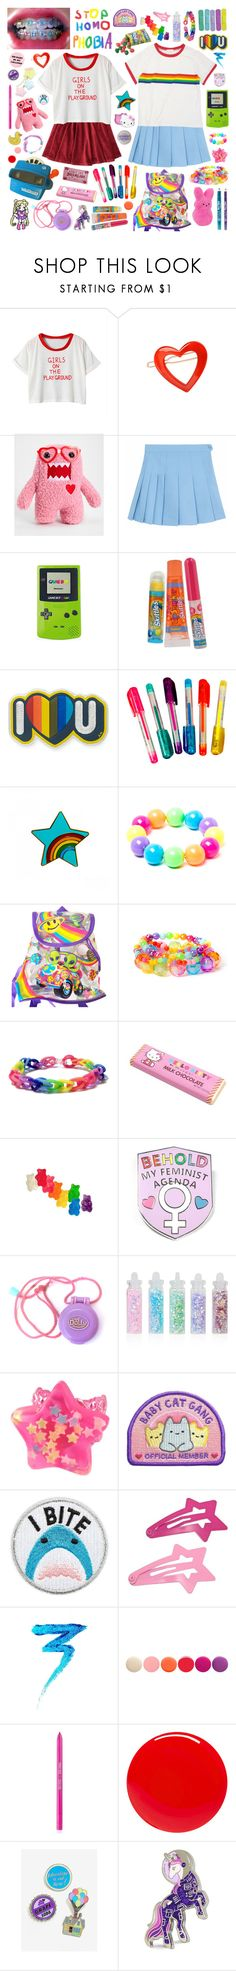 """""""Girls on the playground"""" by pastelprincess152 ❤ liked on Polyvore featuring one spo, Chicnova Fashion, France Luxe, Nintendo, Bonne Bell, Anya Hindmarch, Dylan's Candy Bar, Lisa Frank, claire's and Hello Kitty"""